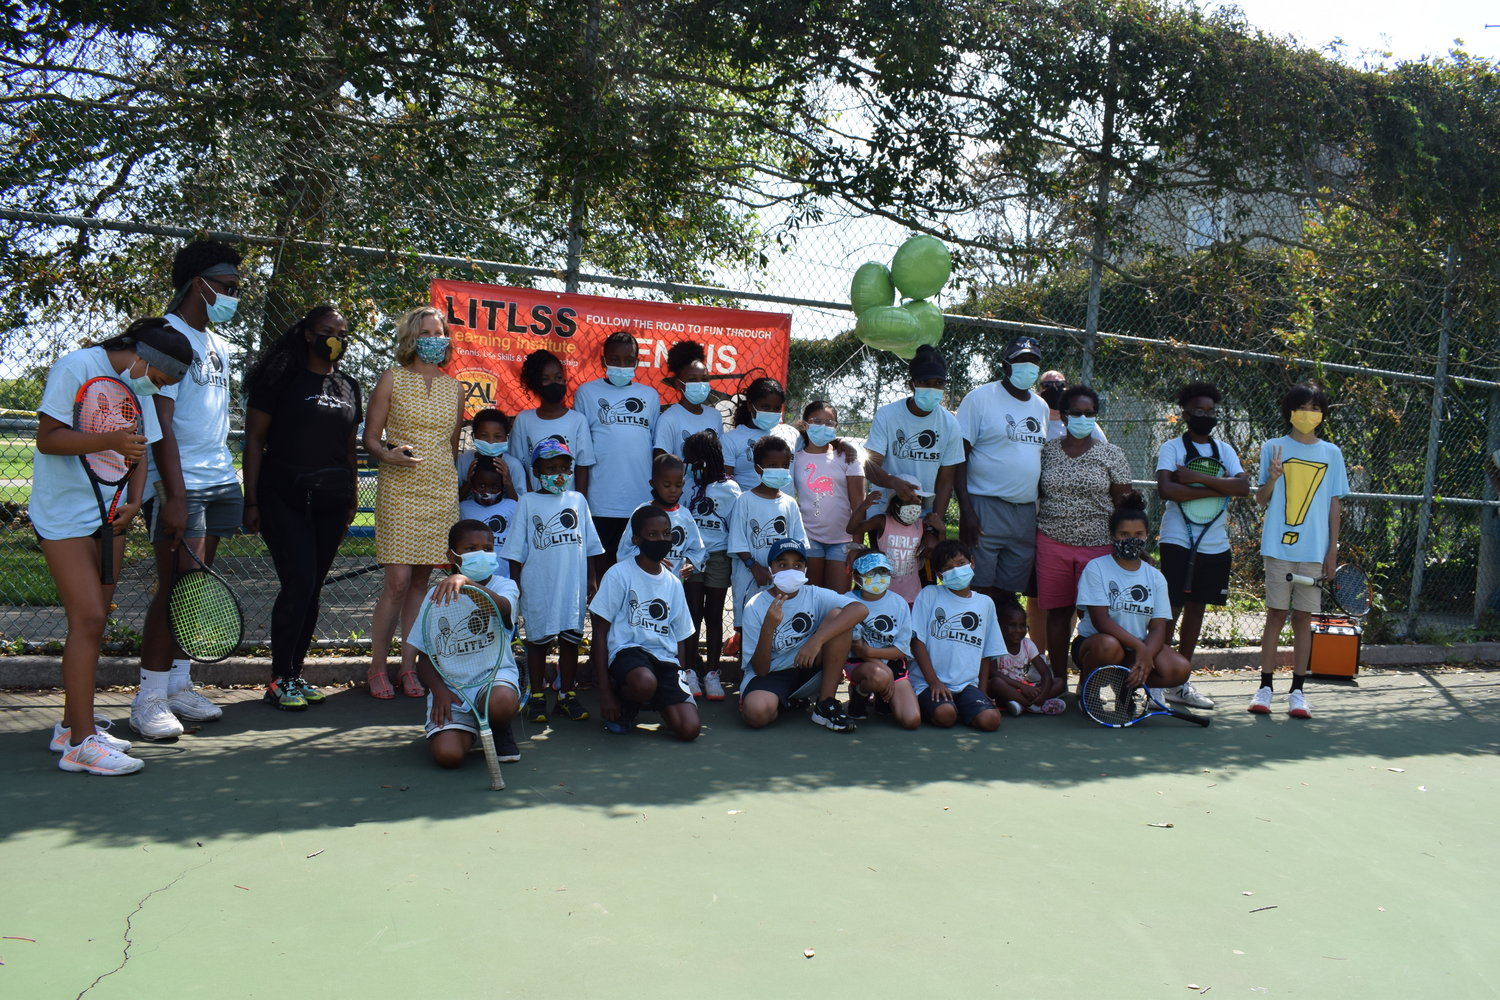 About 20 kids took part in the annual LITLSS tennis summer program from July through August.